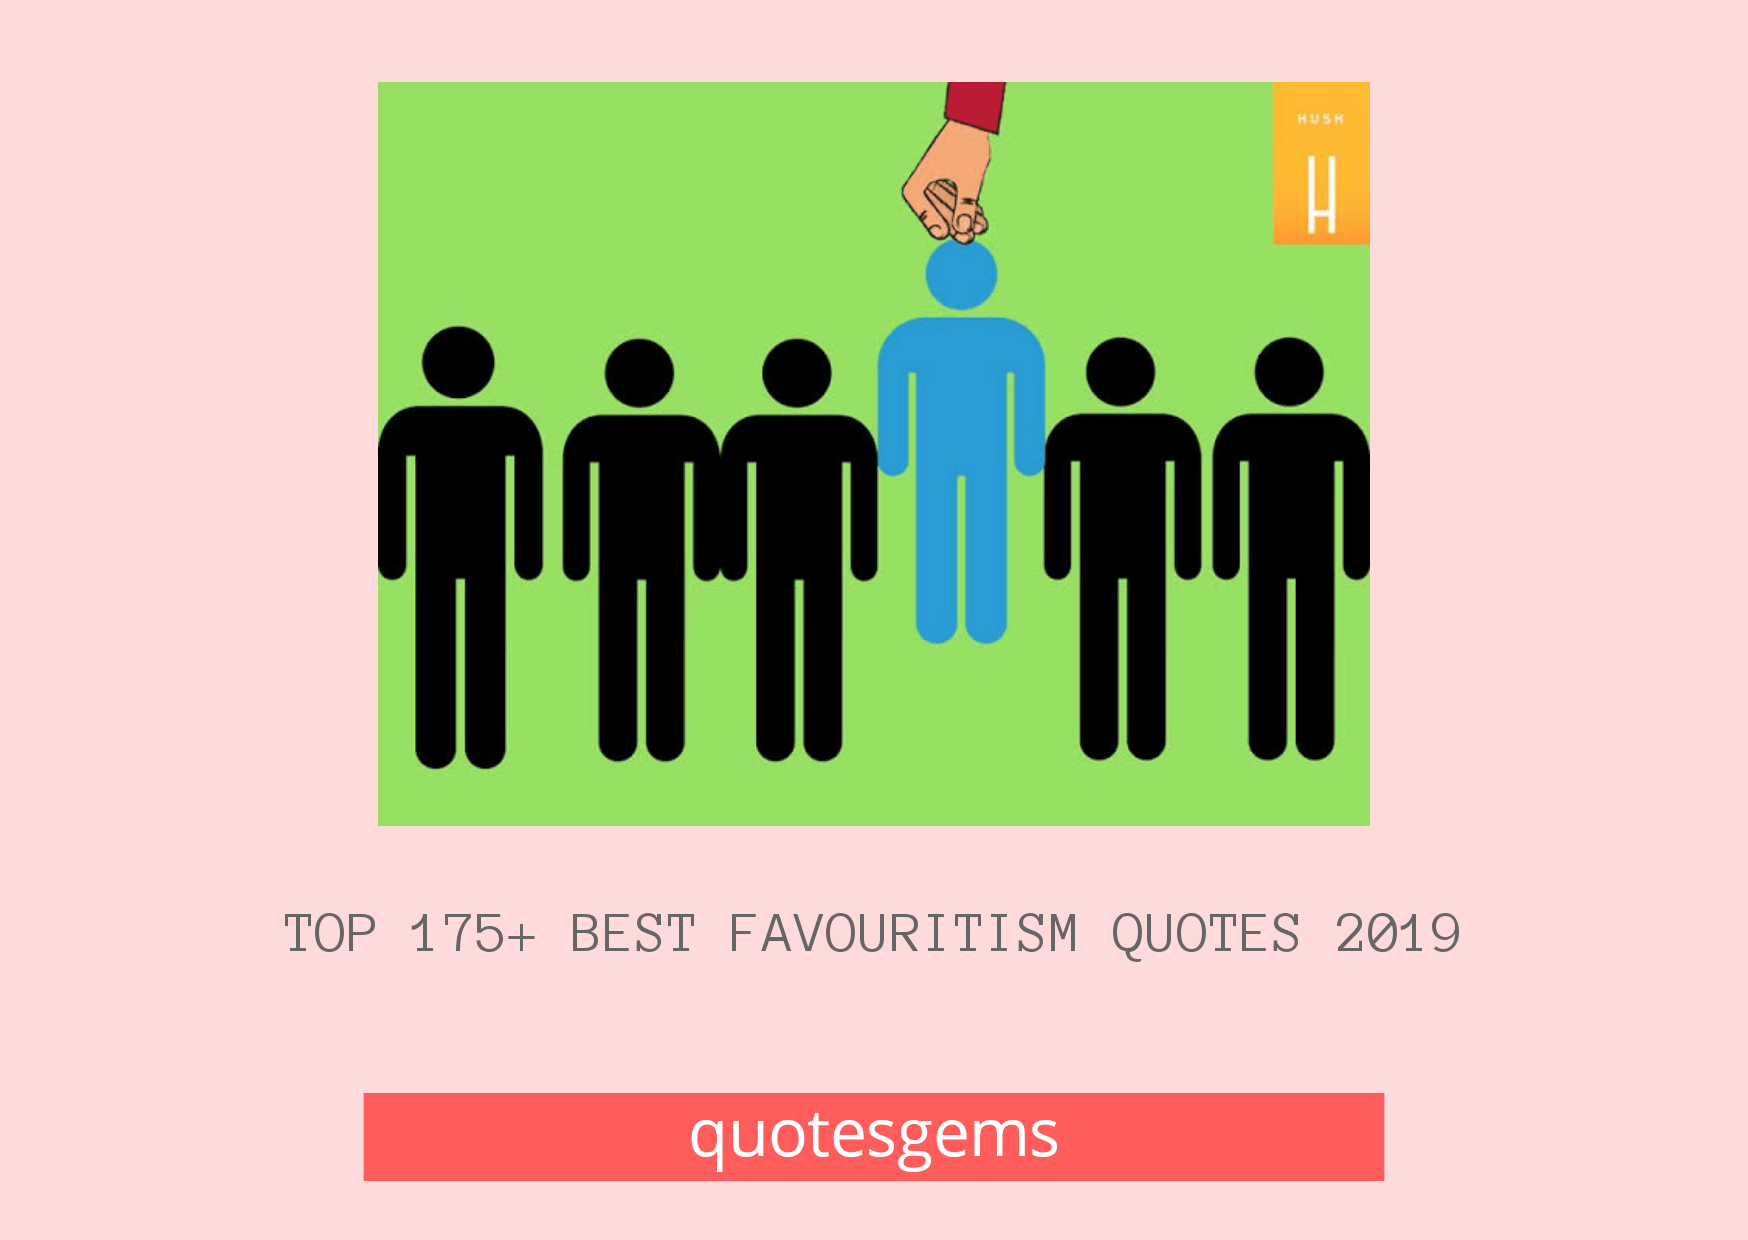 Best Favouritism Quotes 2019